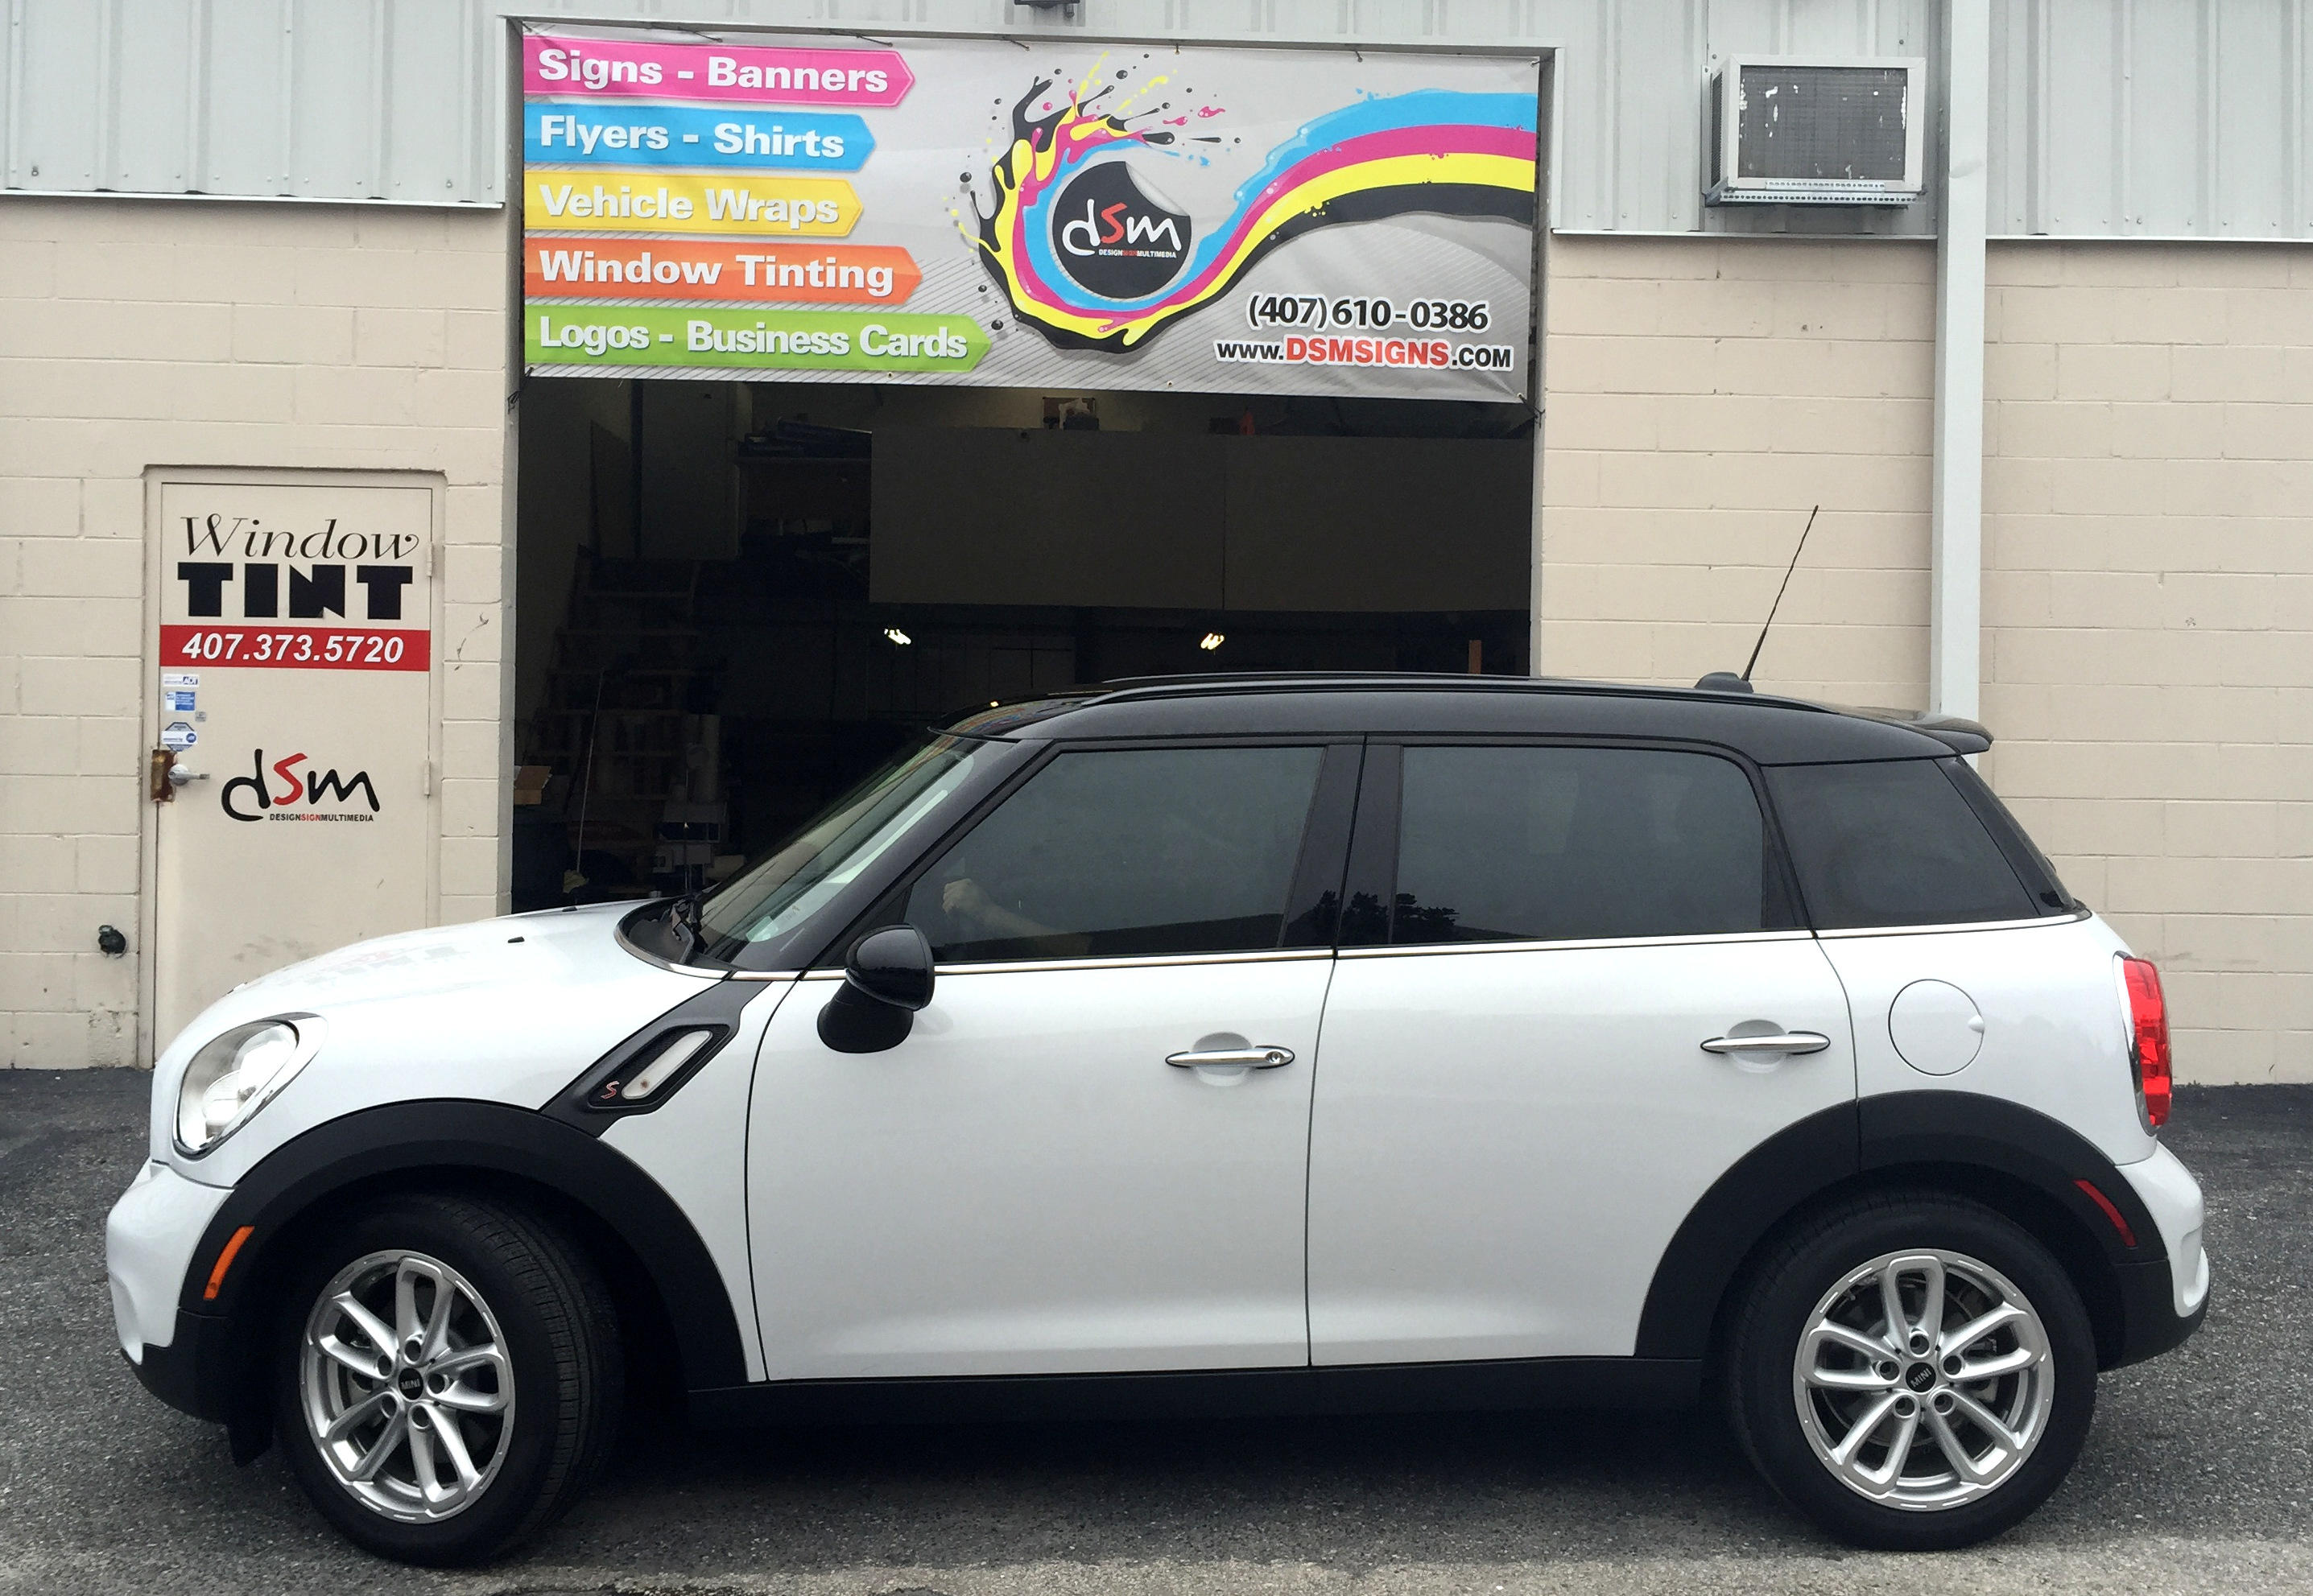 Dsm window tinting coupons near me in orlando 8coupons for Window tinting near me